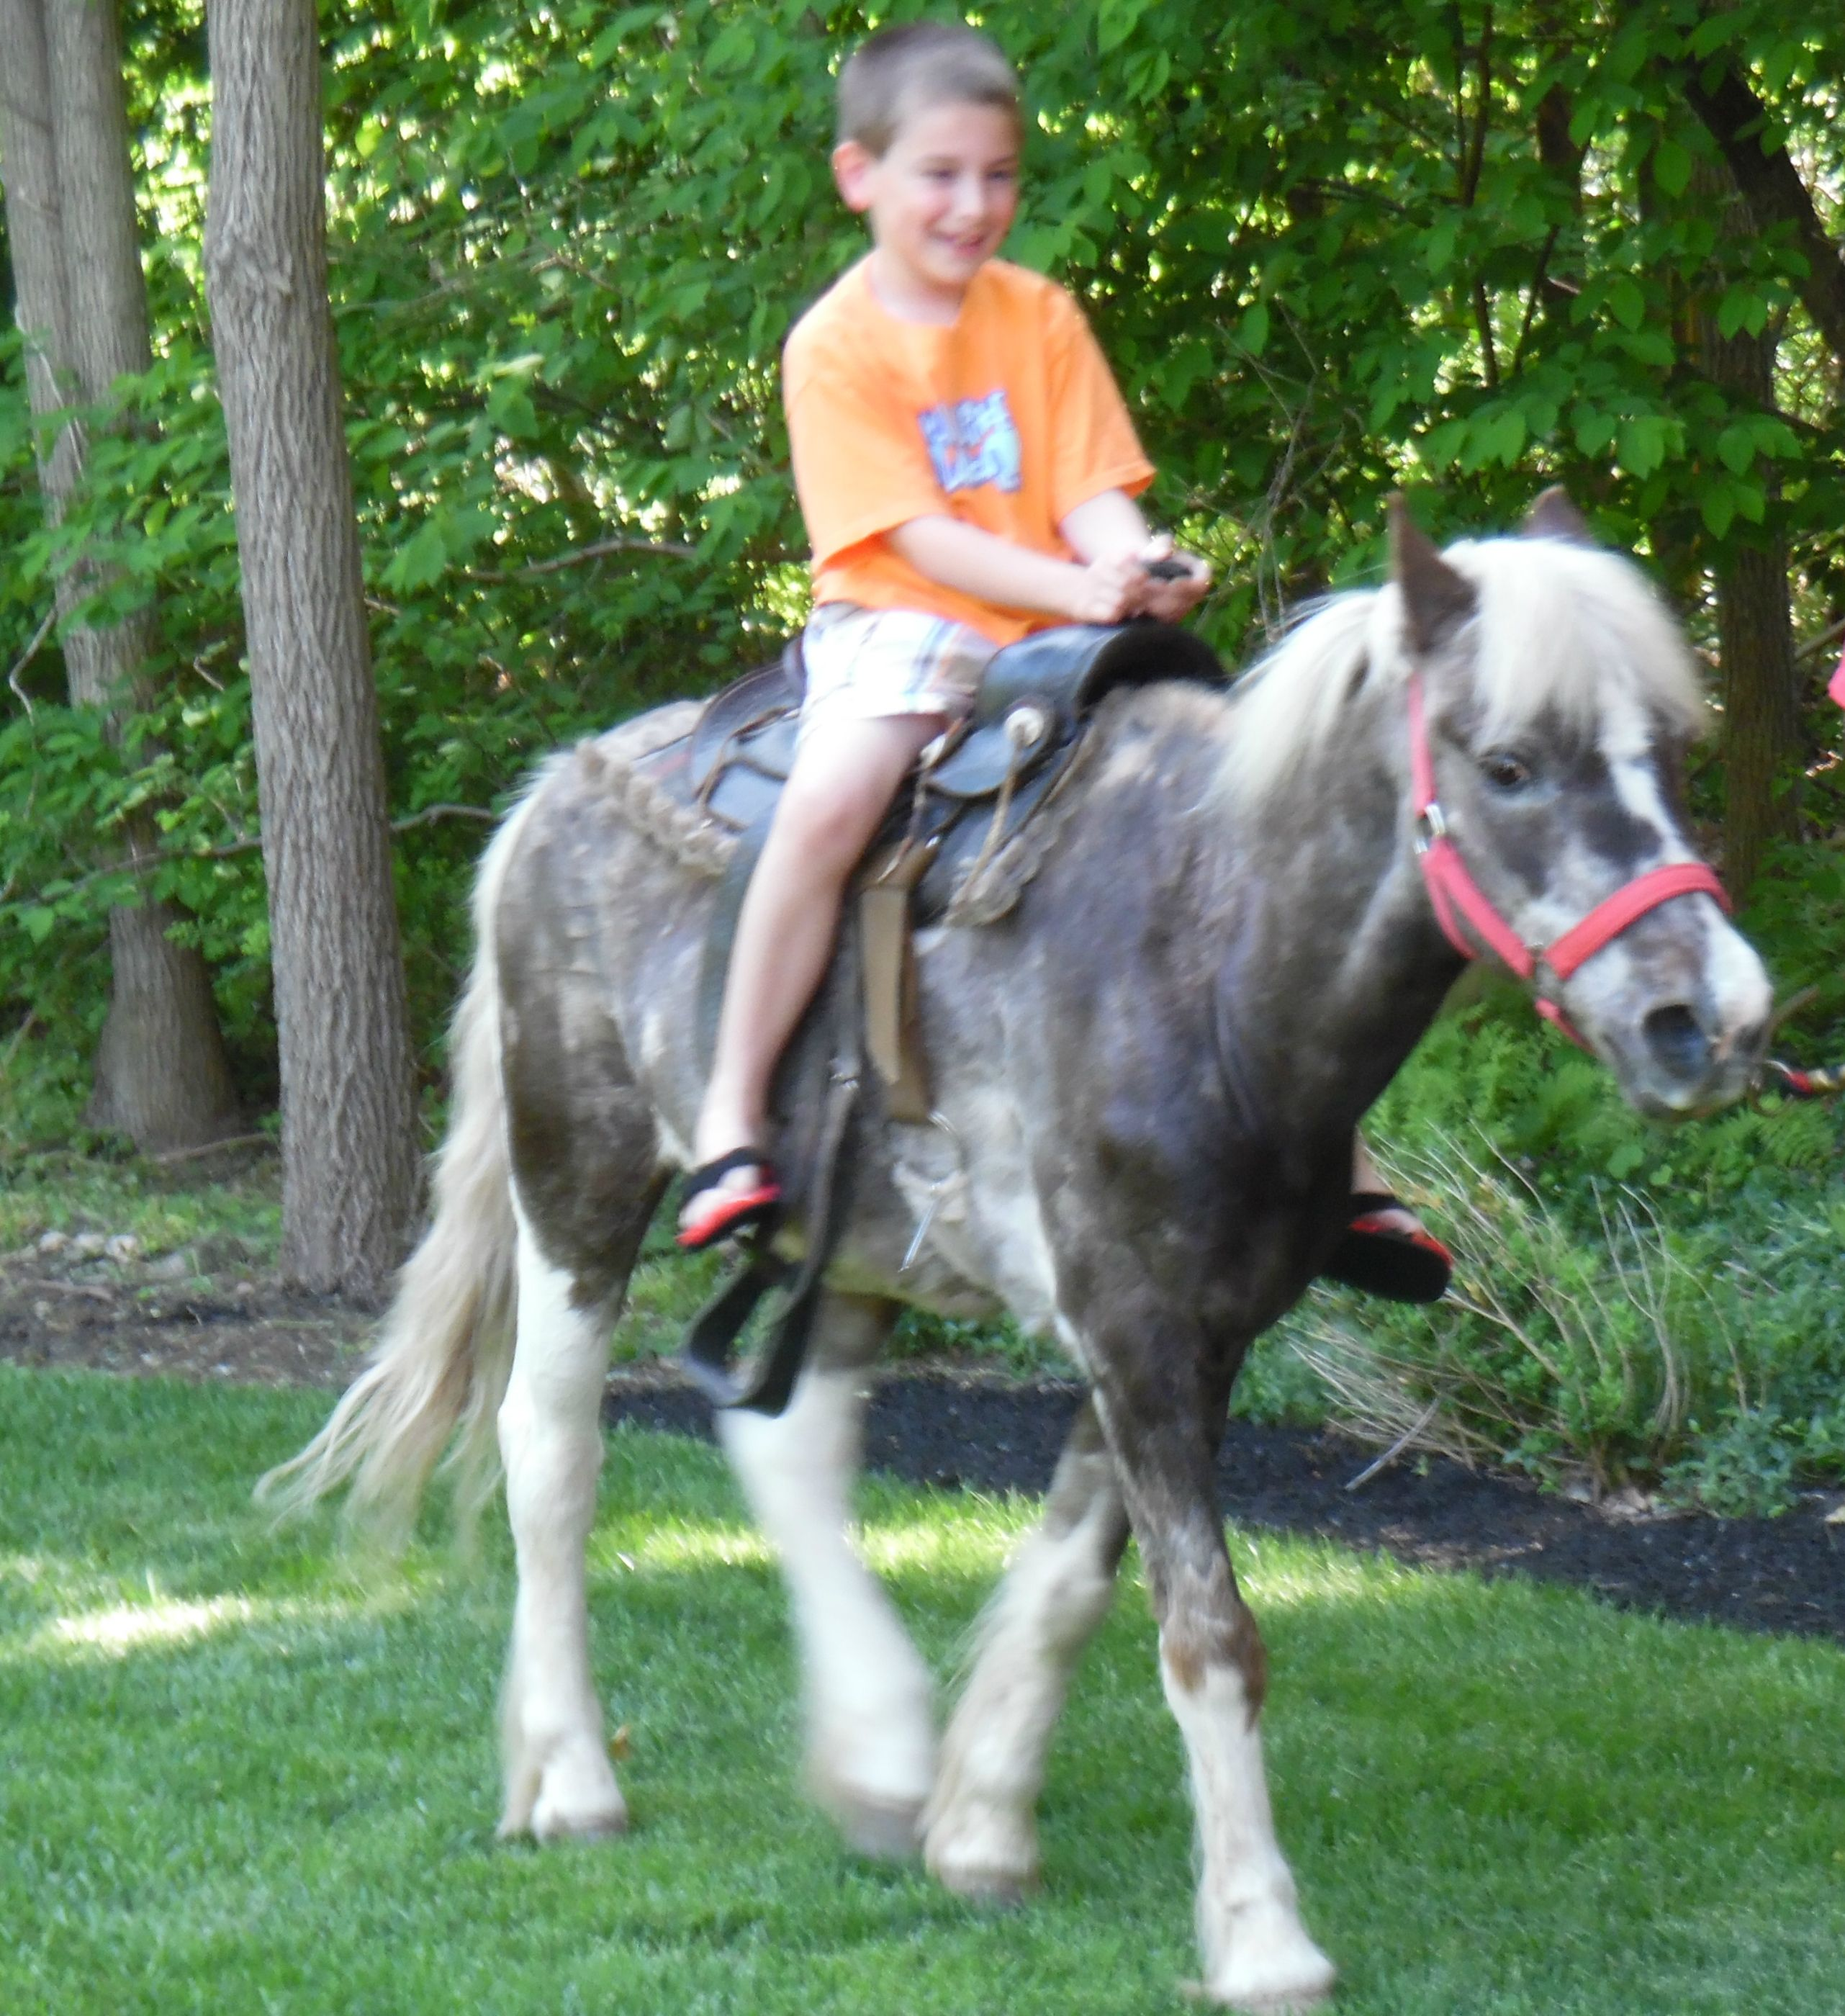 Private back yard birthday with pony rides. New Jersey